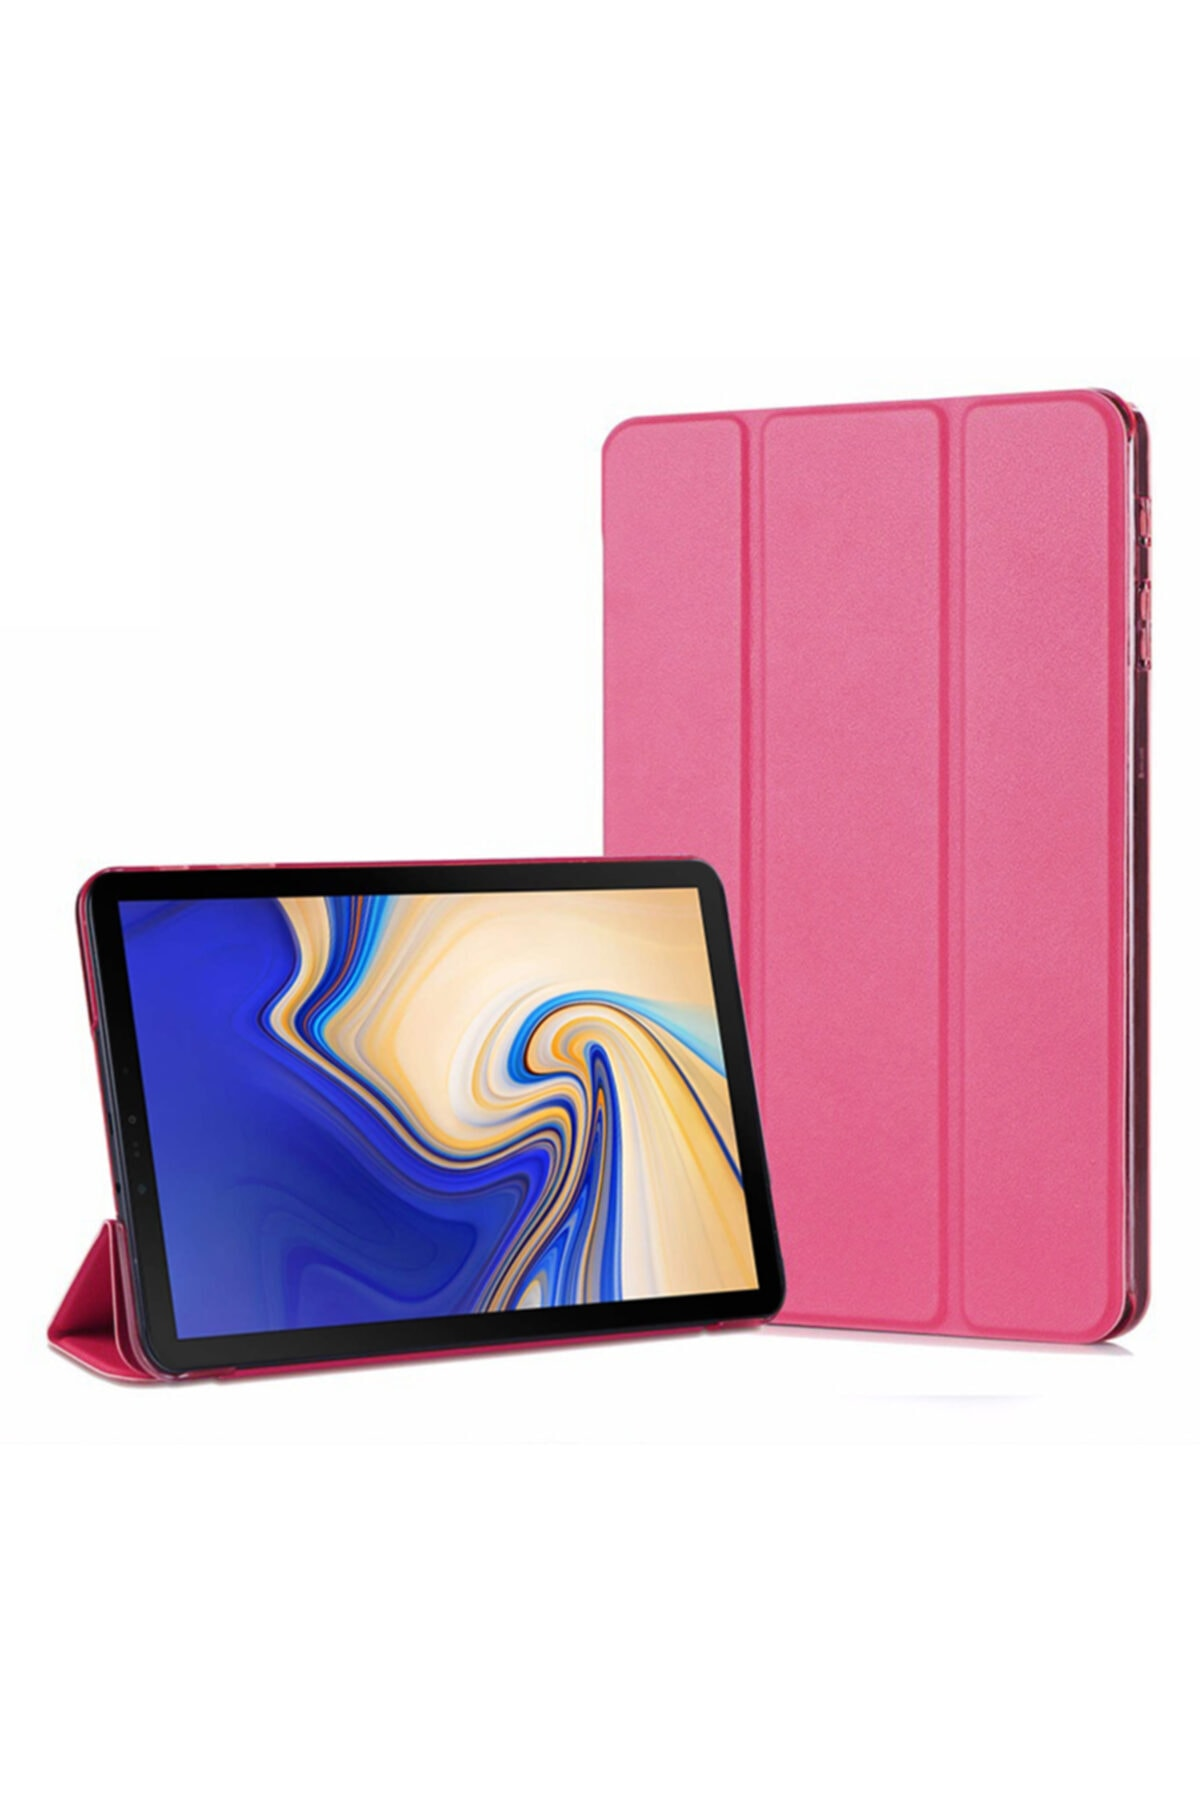 Microsonic Galaxy Tab S4 10.5'' T830 Smart Case Ve Arka Kılıf, Microsonic Pembe 1